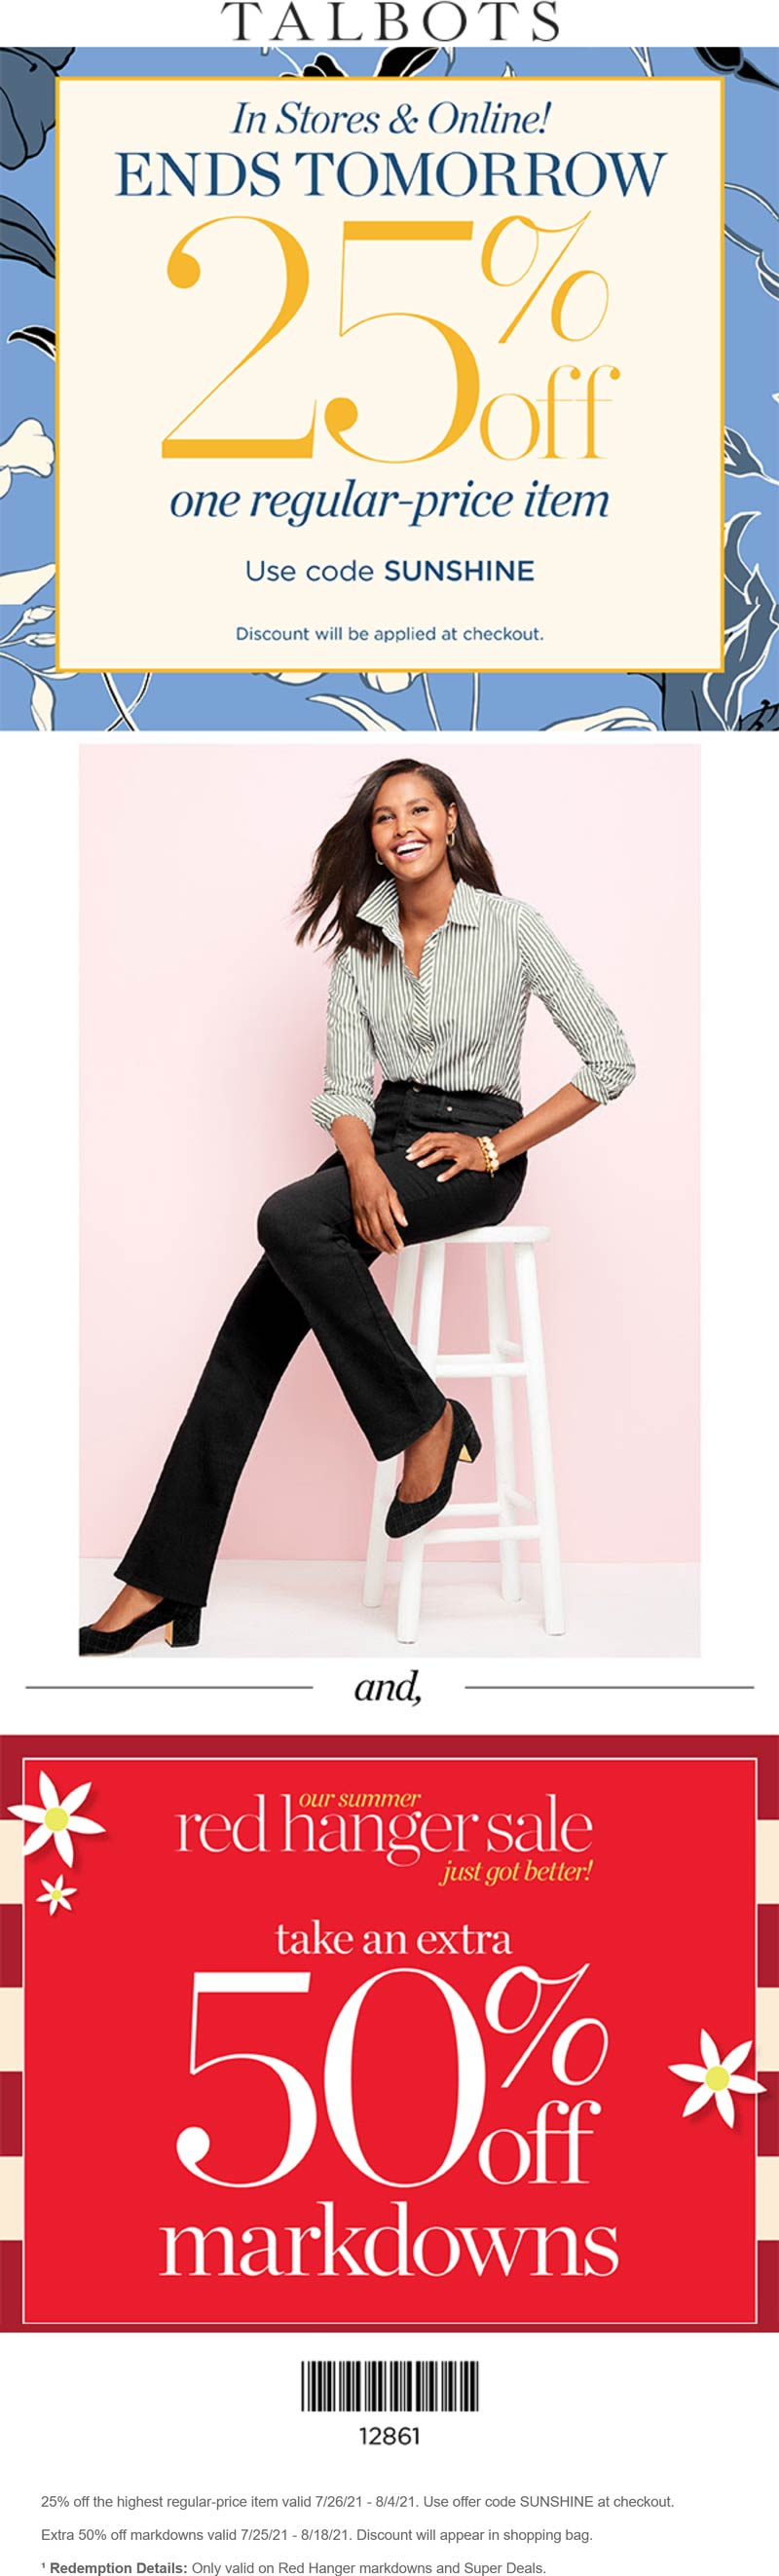 Talbots stores Coupon  25% off a single item at Talbots, or online via promo code SUNSHINE #talbots